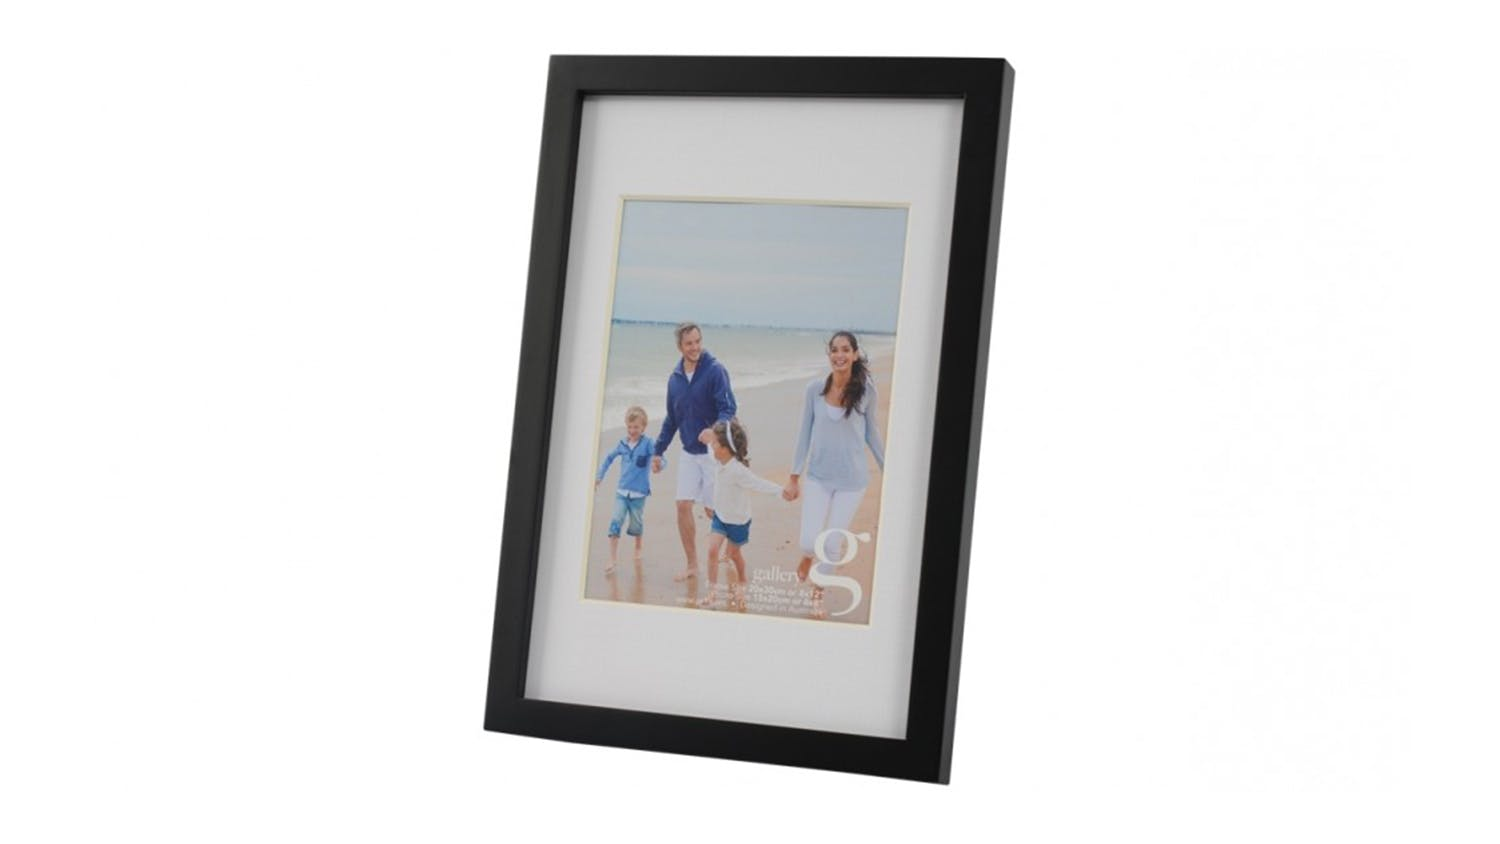 UR1 Gallery 8x12 Photo Frame with 6x8 Opening - Black